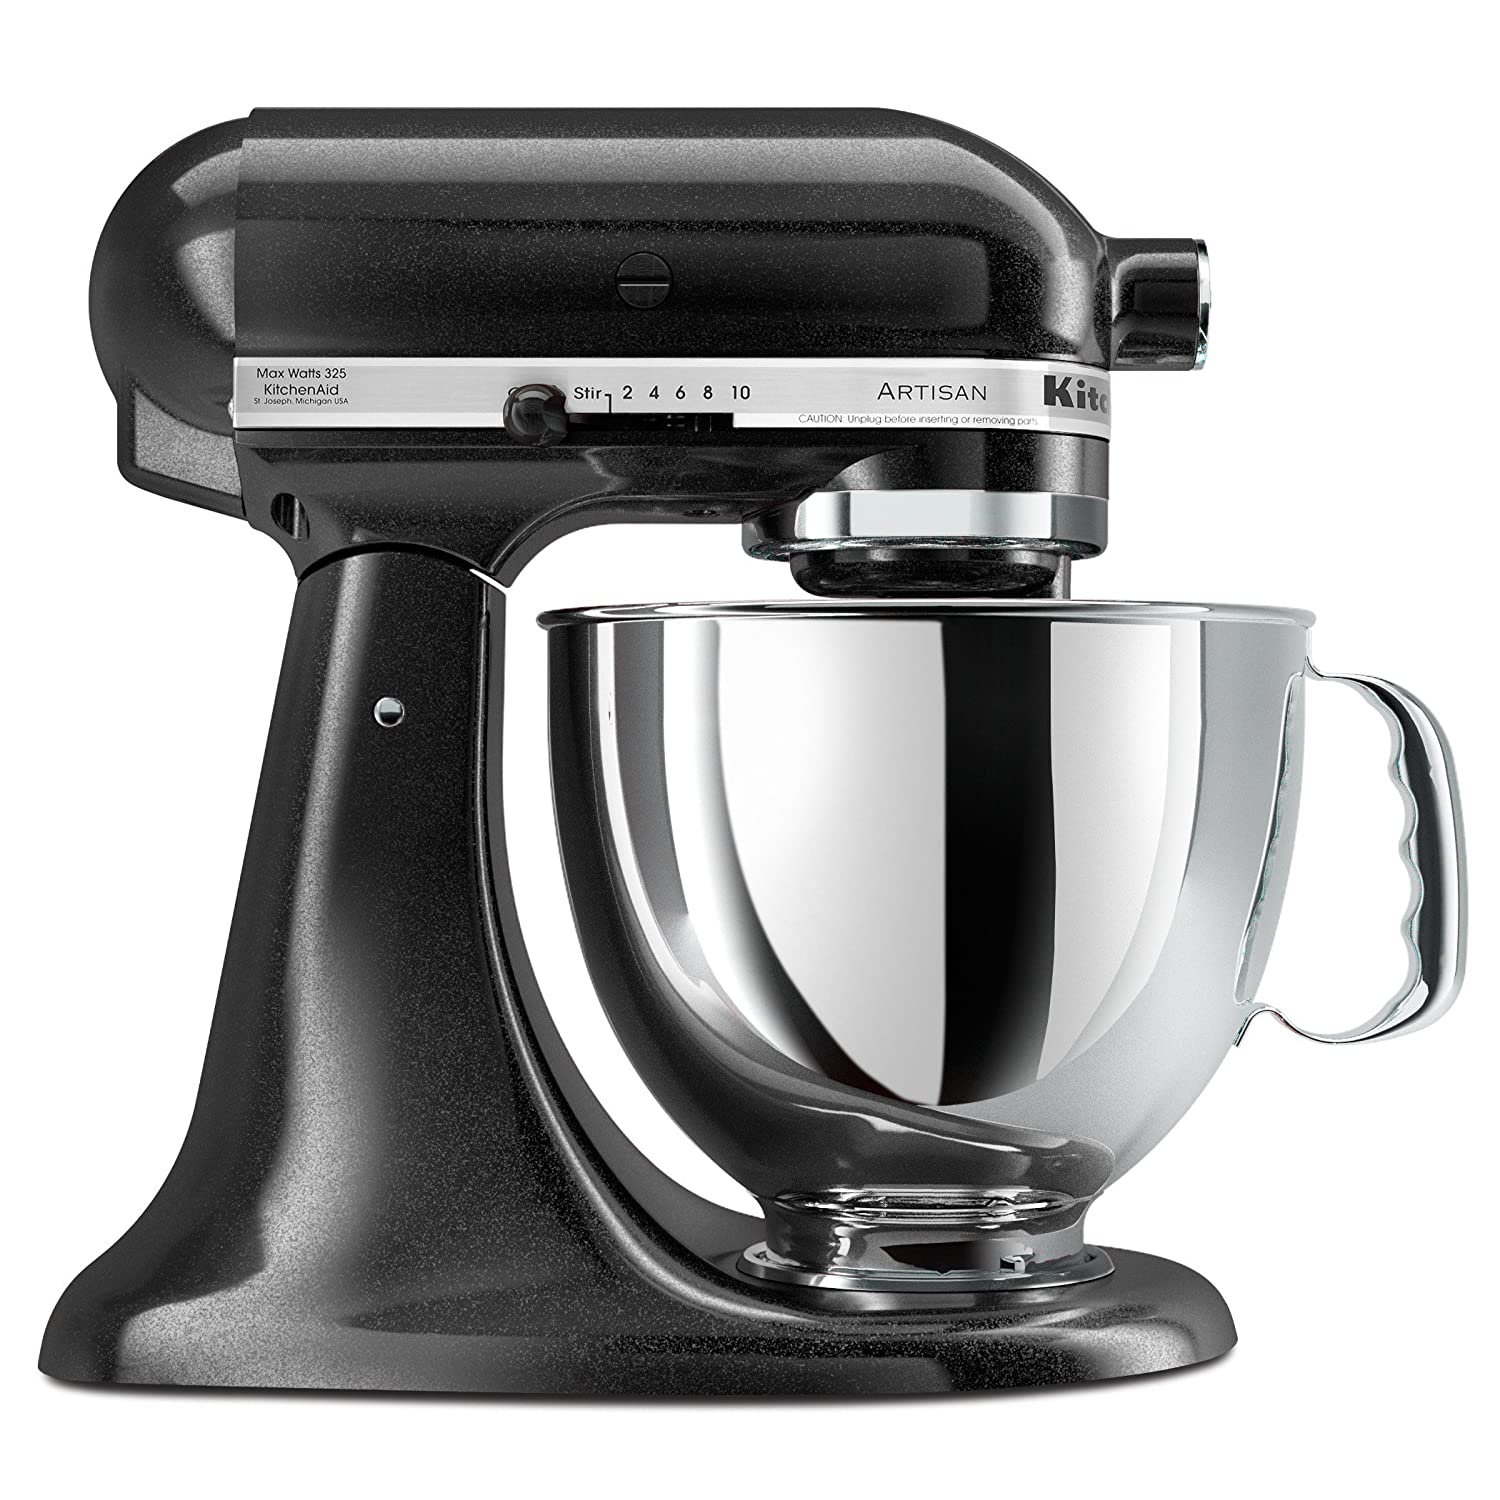 kitchen aid stand mixer attachments lighting over table kitchenaid mixers and